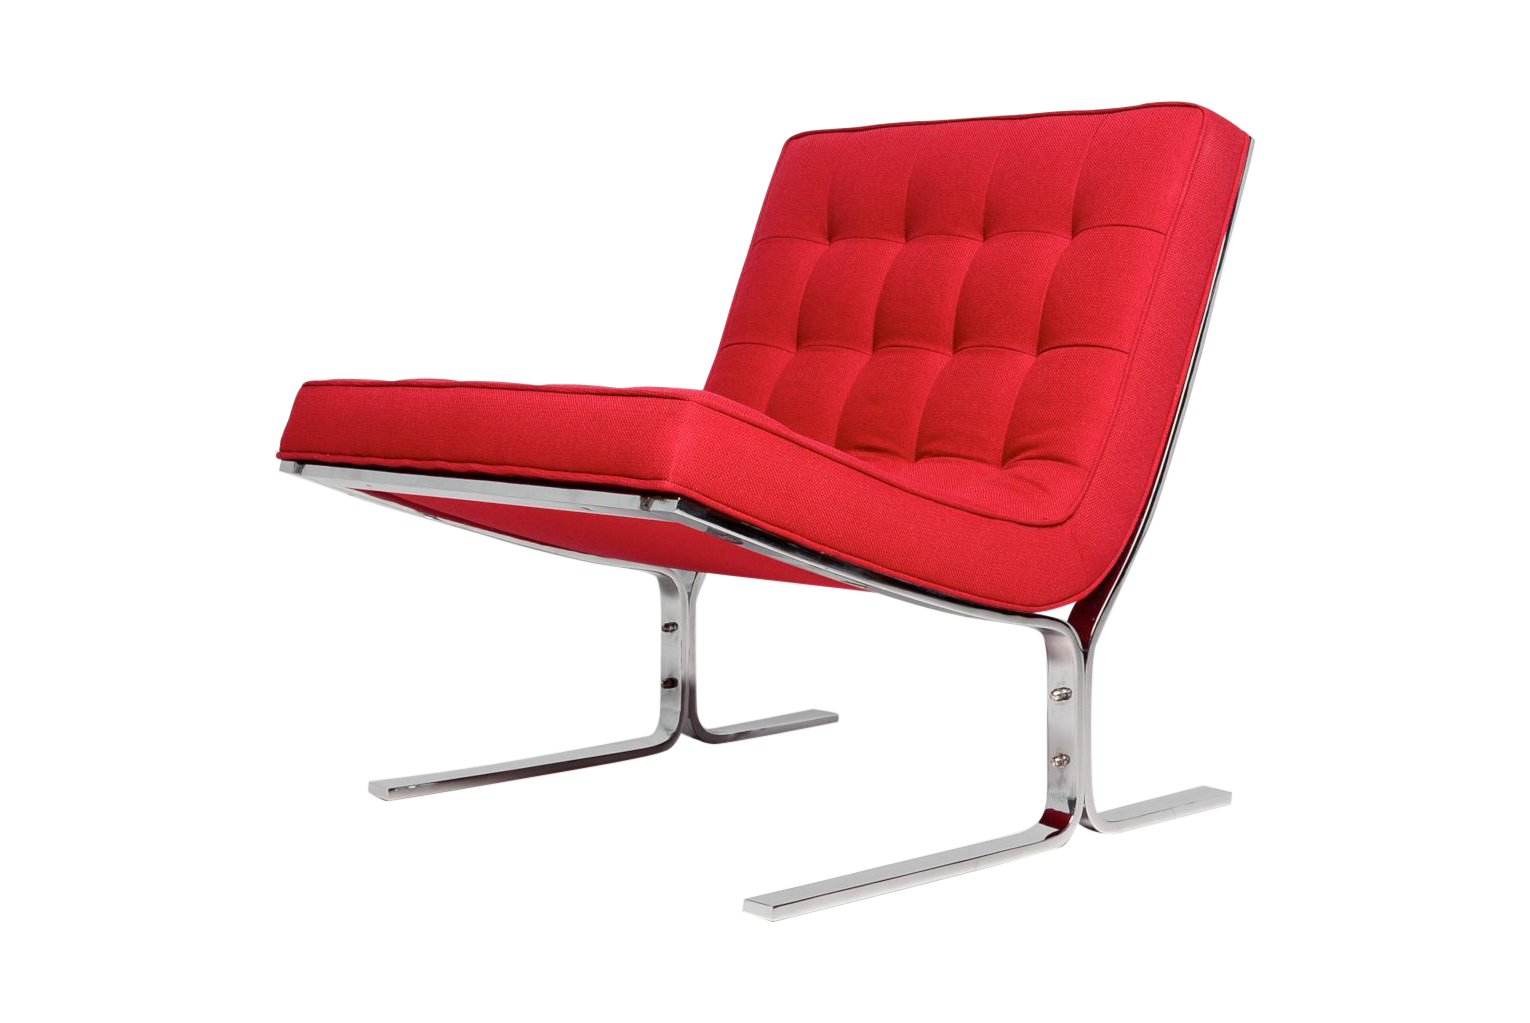 Swell Nico Armless Chair Designer Lounge Oversized Lounge By Download Free Architecture Designs Embacsunscenecom